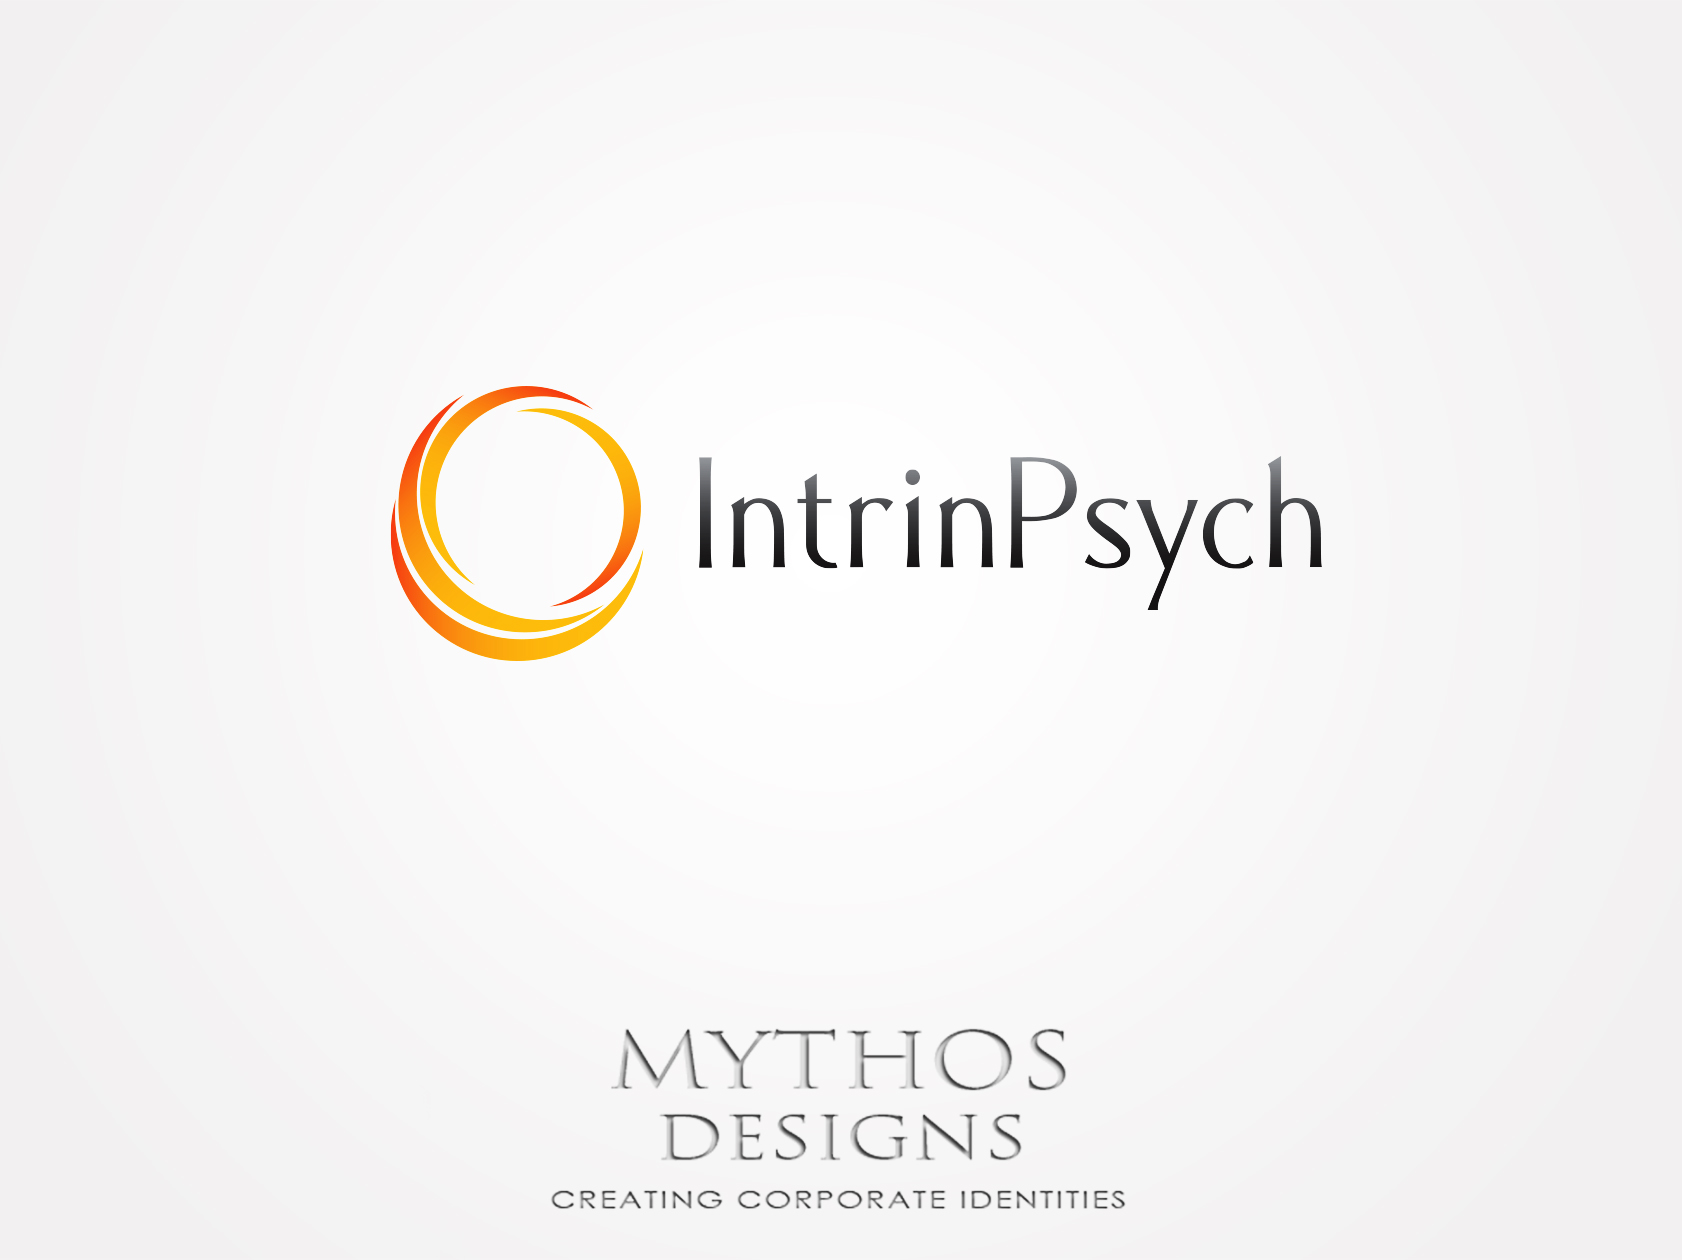 Logo Design by Mythos Designs - Entry No. 43 in the Logo Design Contest New Logo Design for IntrinPsych.